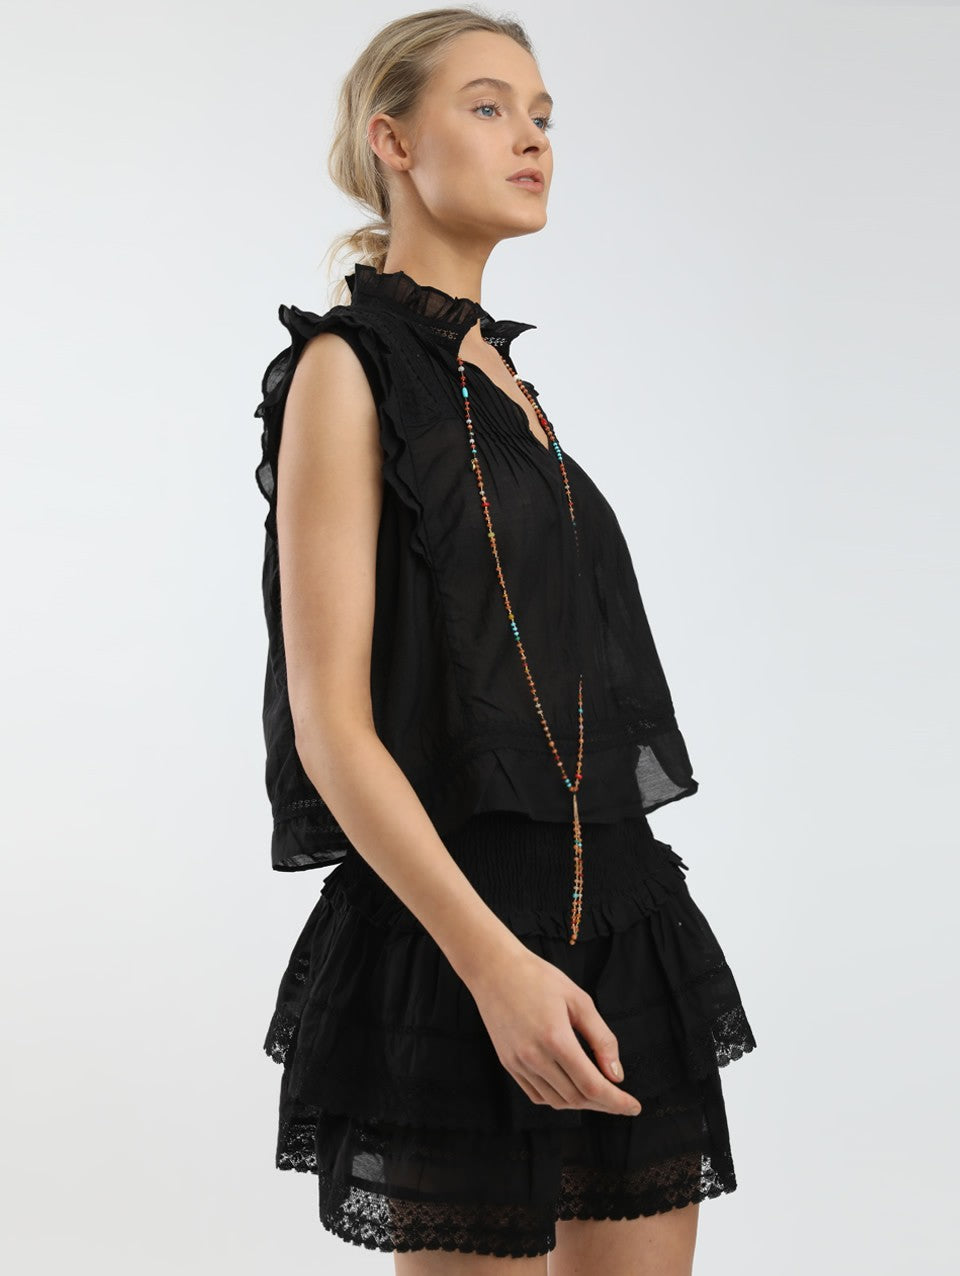 SACK'S - Nani Lace Top online at PAYA boutique